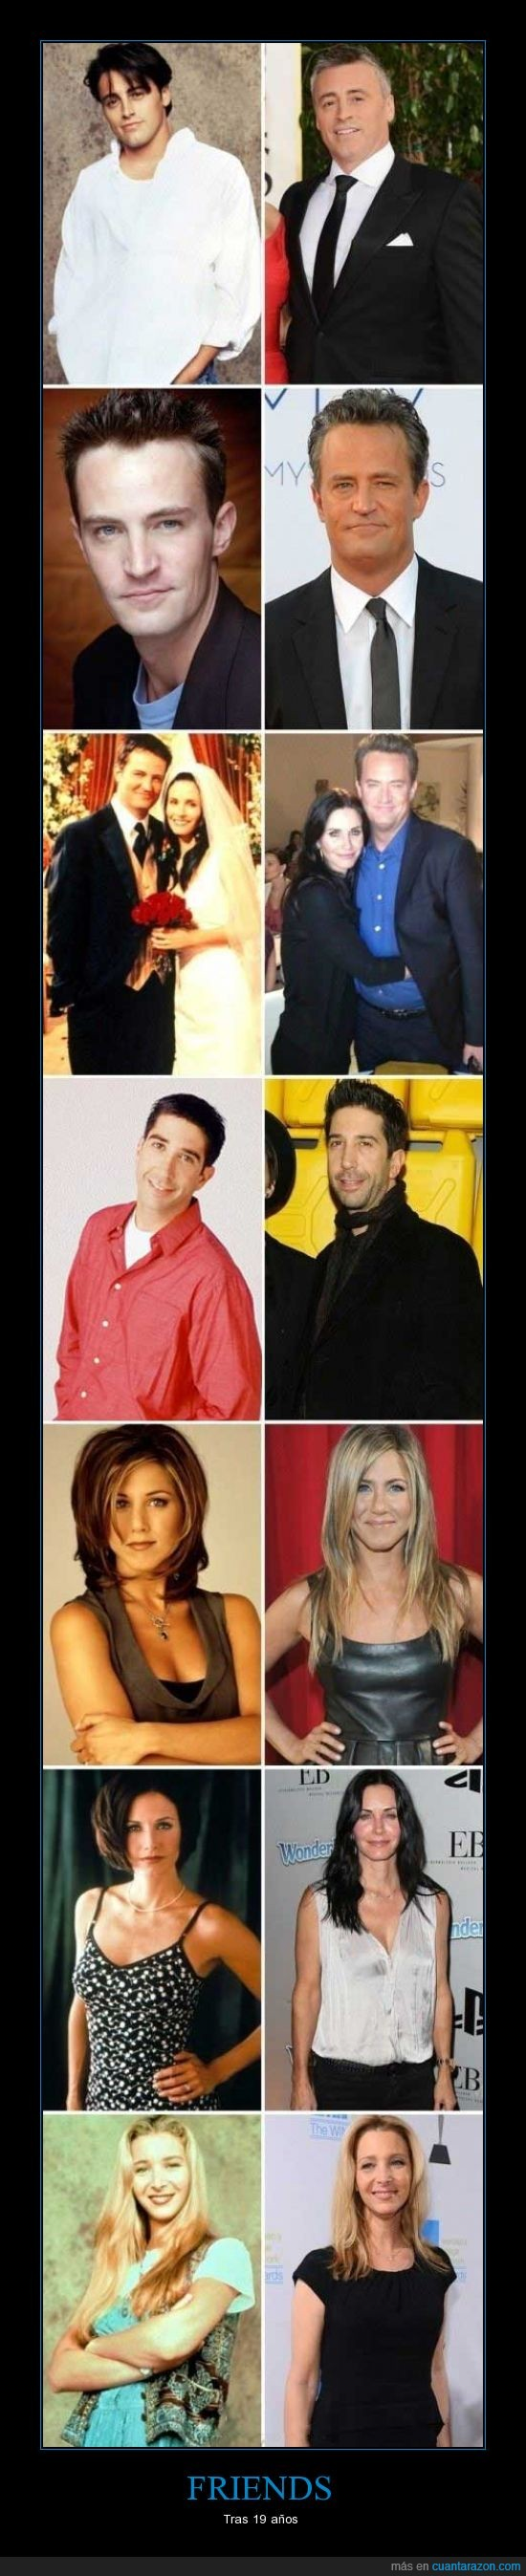 chandler,friends,joey,mejor comedia de la historia,monica,phoebe,rachel,ross,tv show